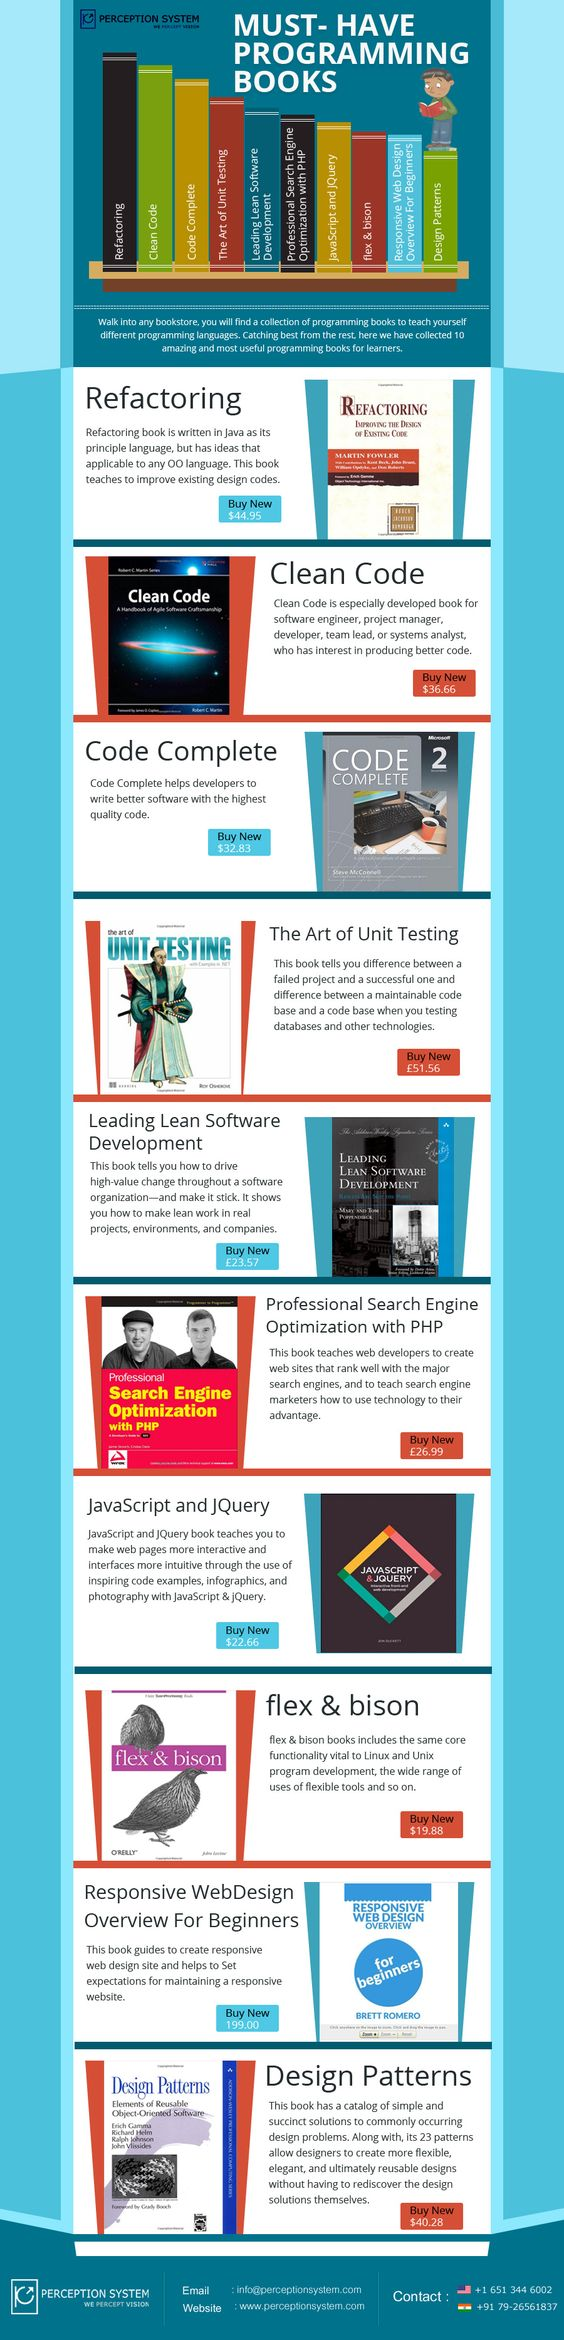 Top 10 Books to Become Expert in Coding and Programming